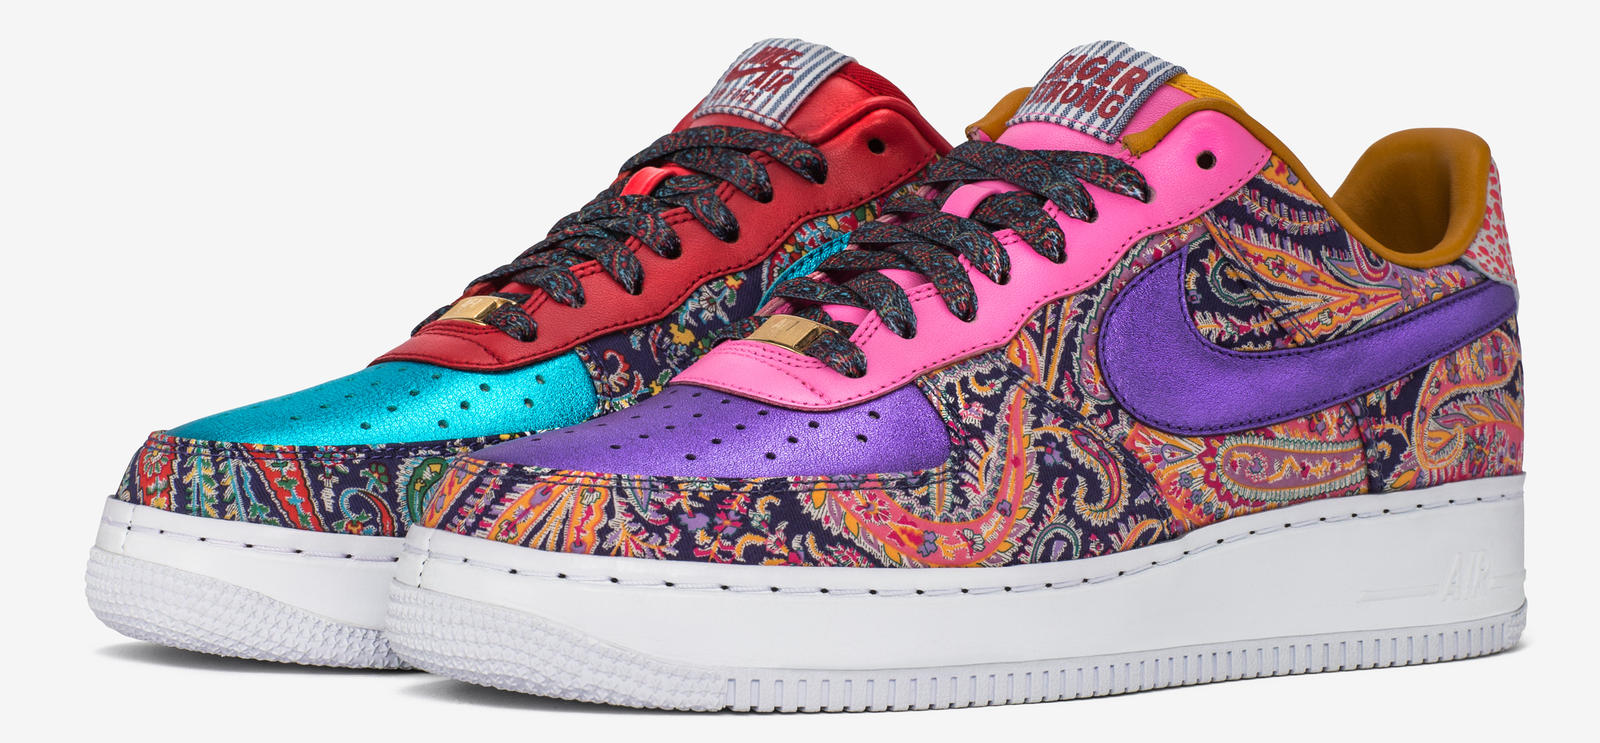 colorful air force 1 shoes